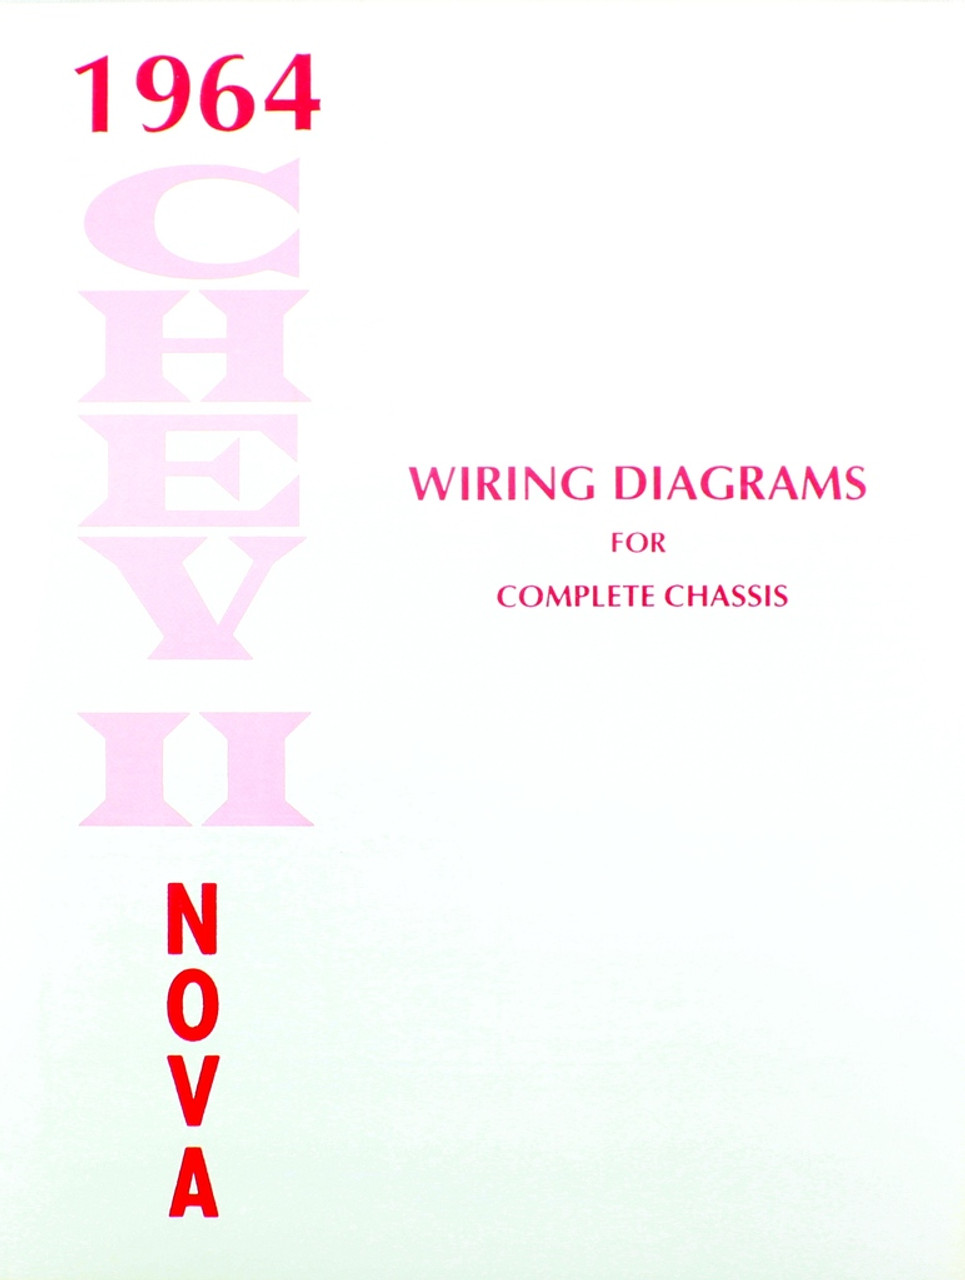 64 1964 chevy nova electrical wiring diagram manual i 5 classic chevy 64 1964 chevy nova electrical wiring diagram manual asfbconference2016 Choice Image